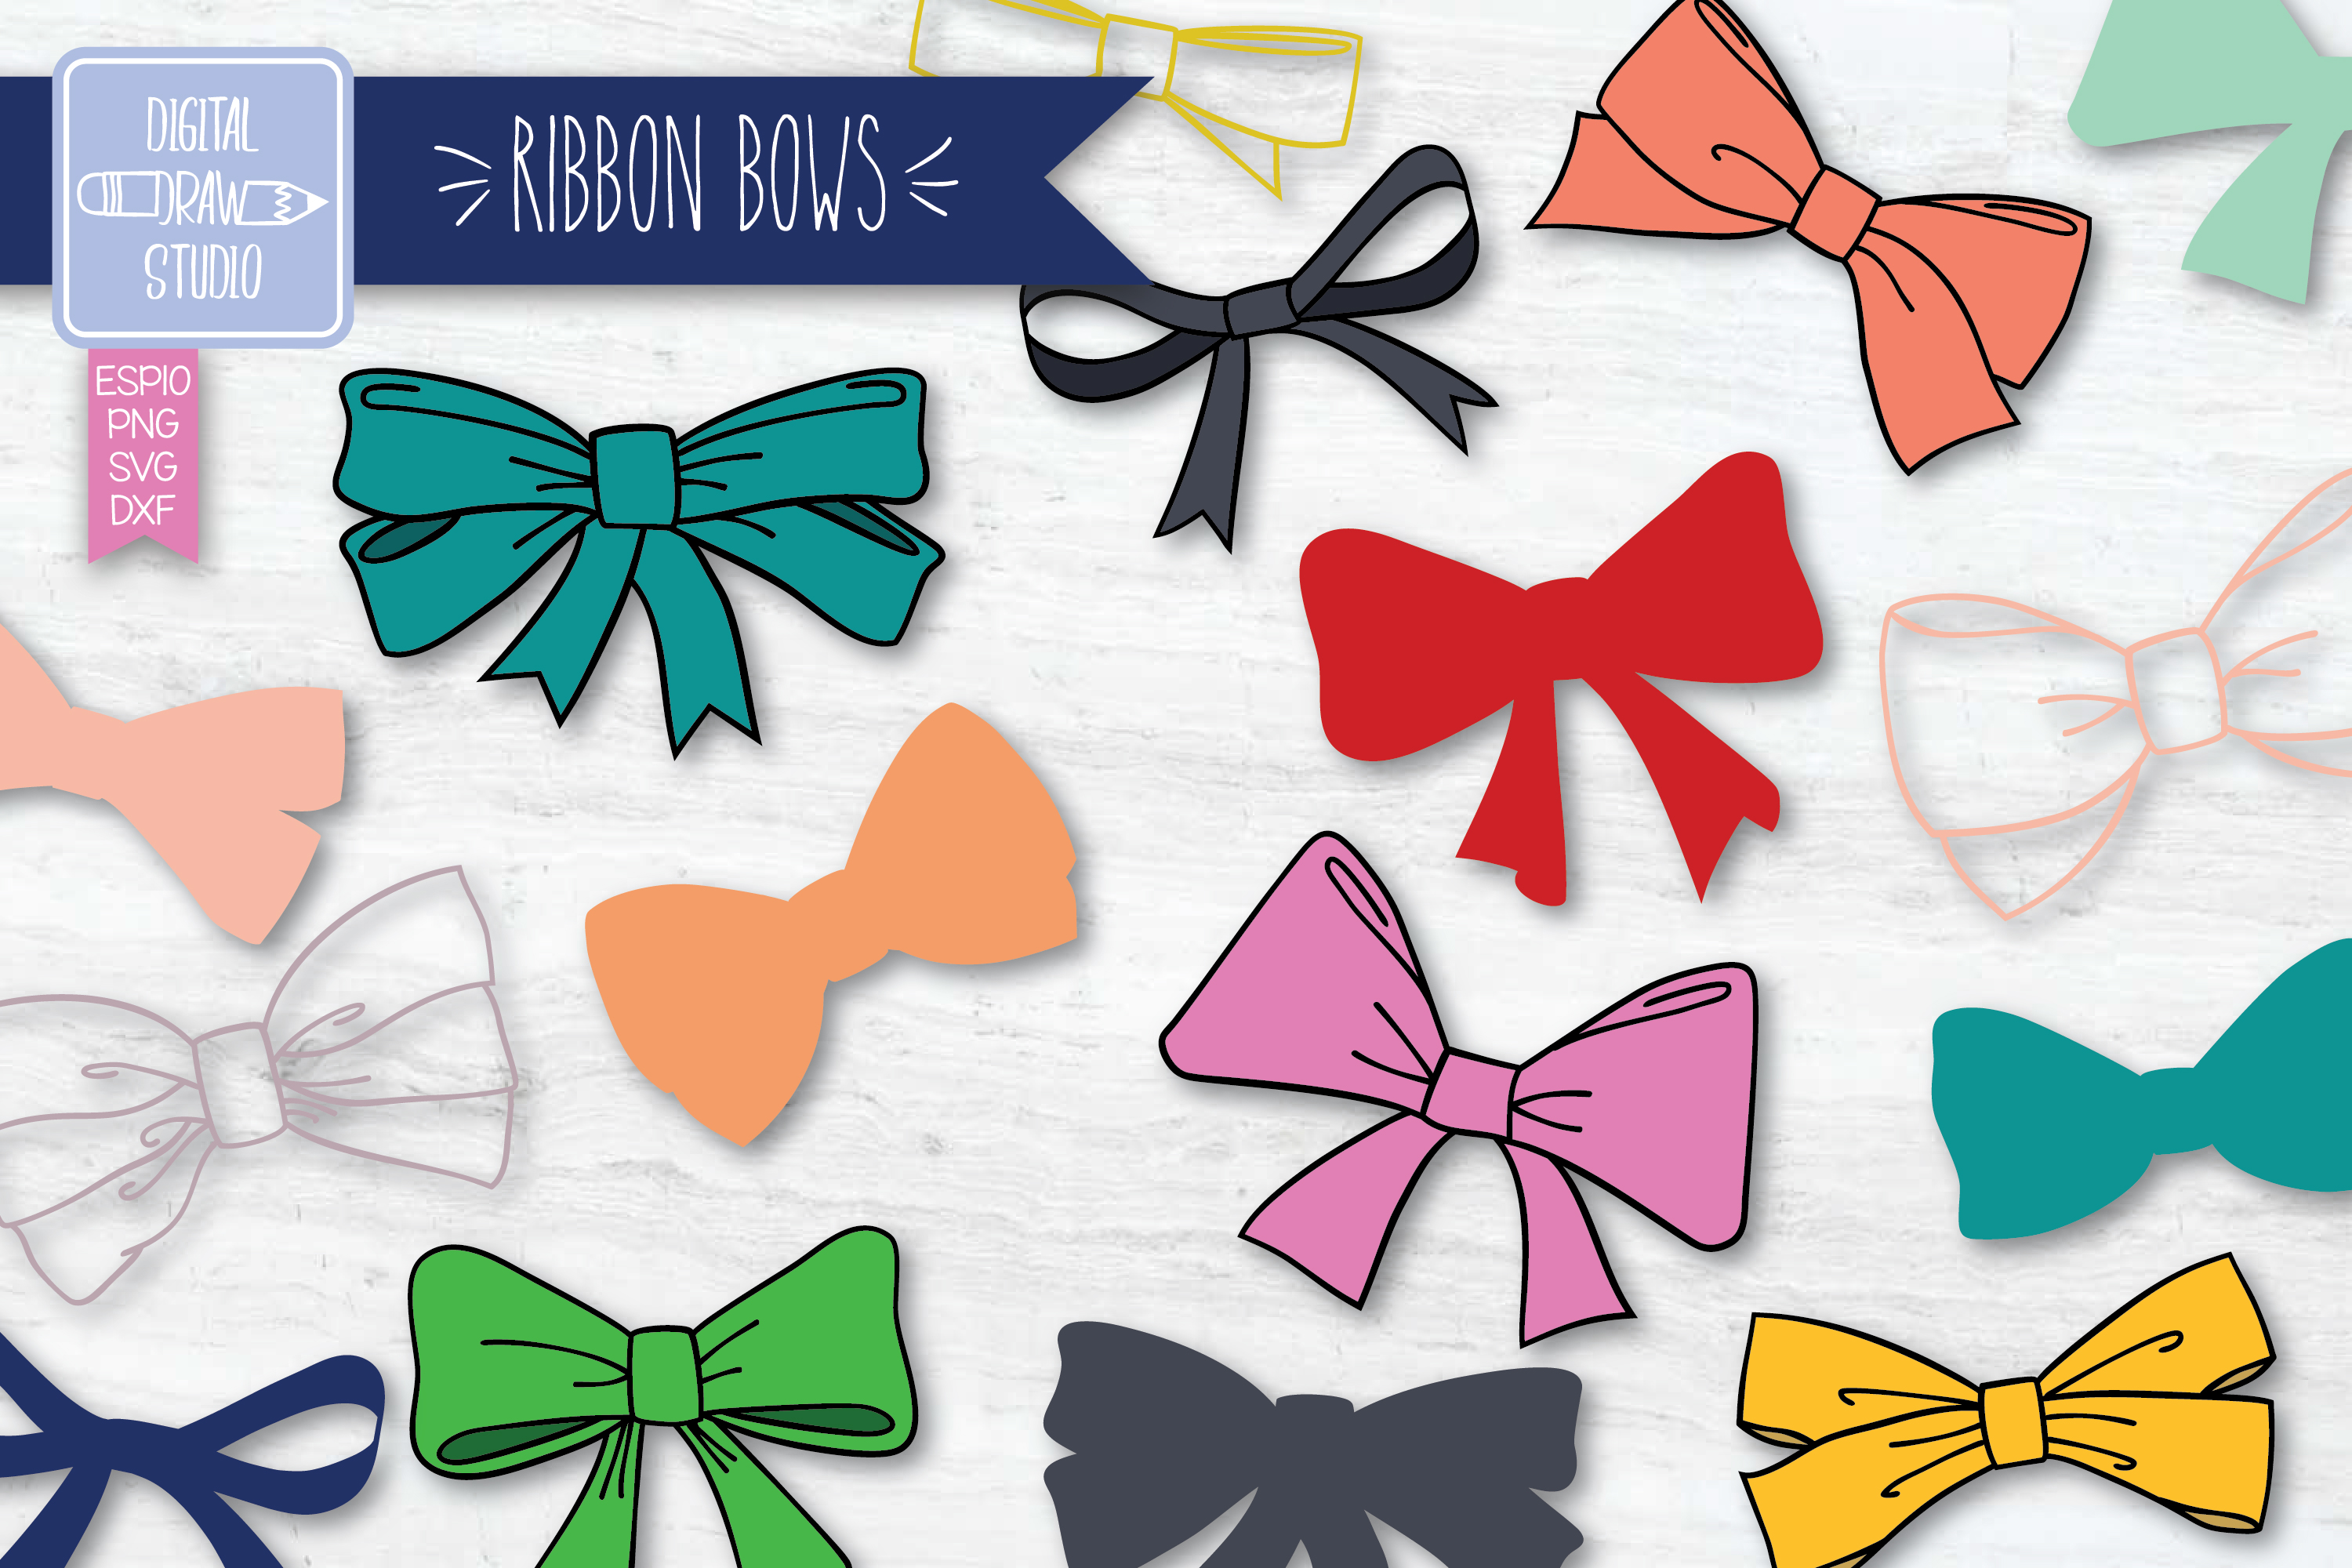 Download Free Hand Drawn Ribbon Bow Color Illustration Graphic By for Cricut Explore, Silhouette and other cutting machines.